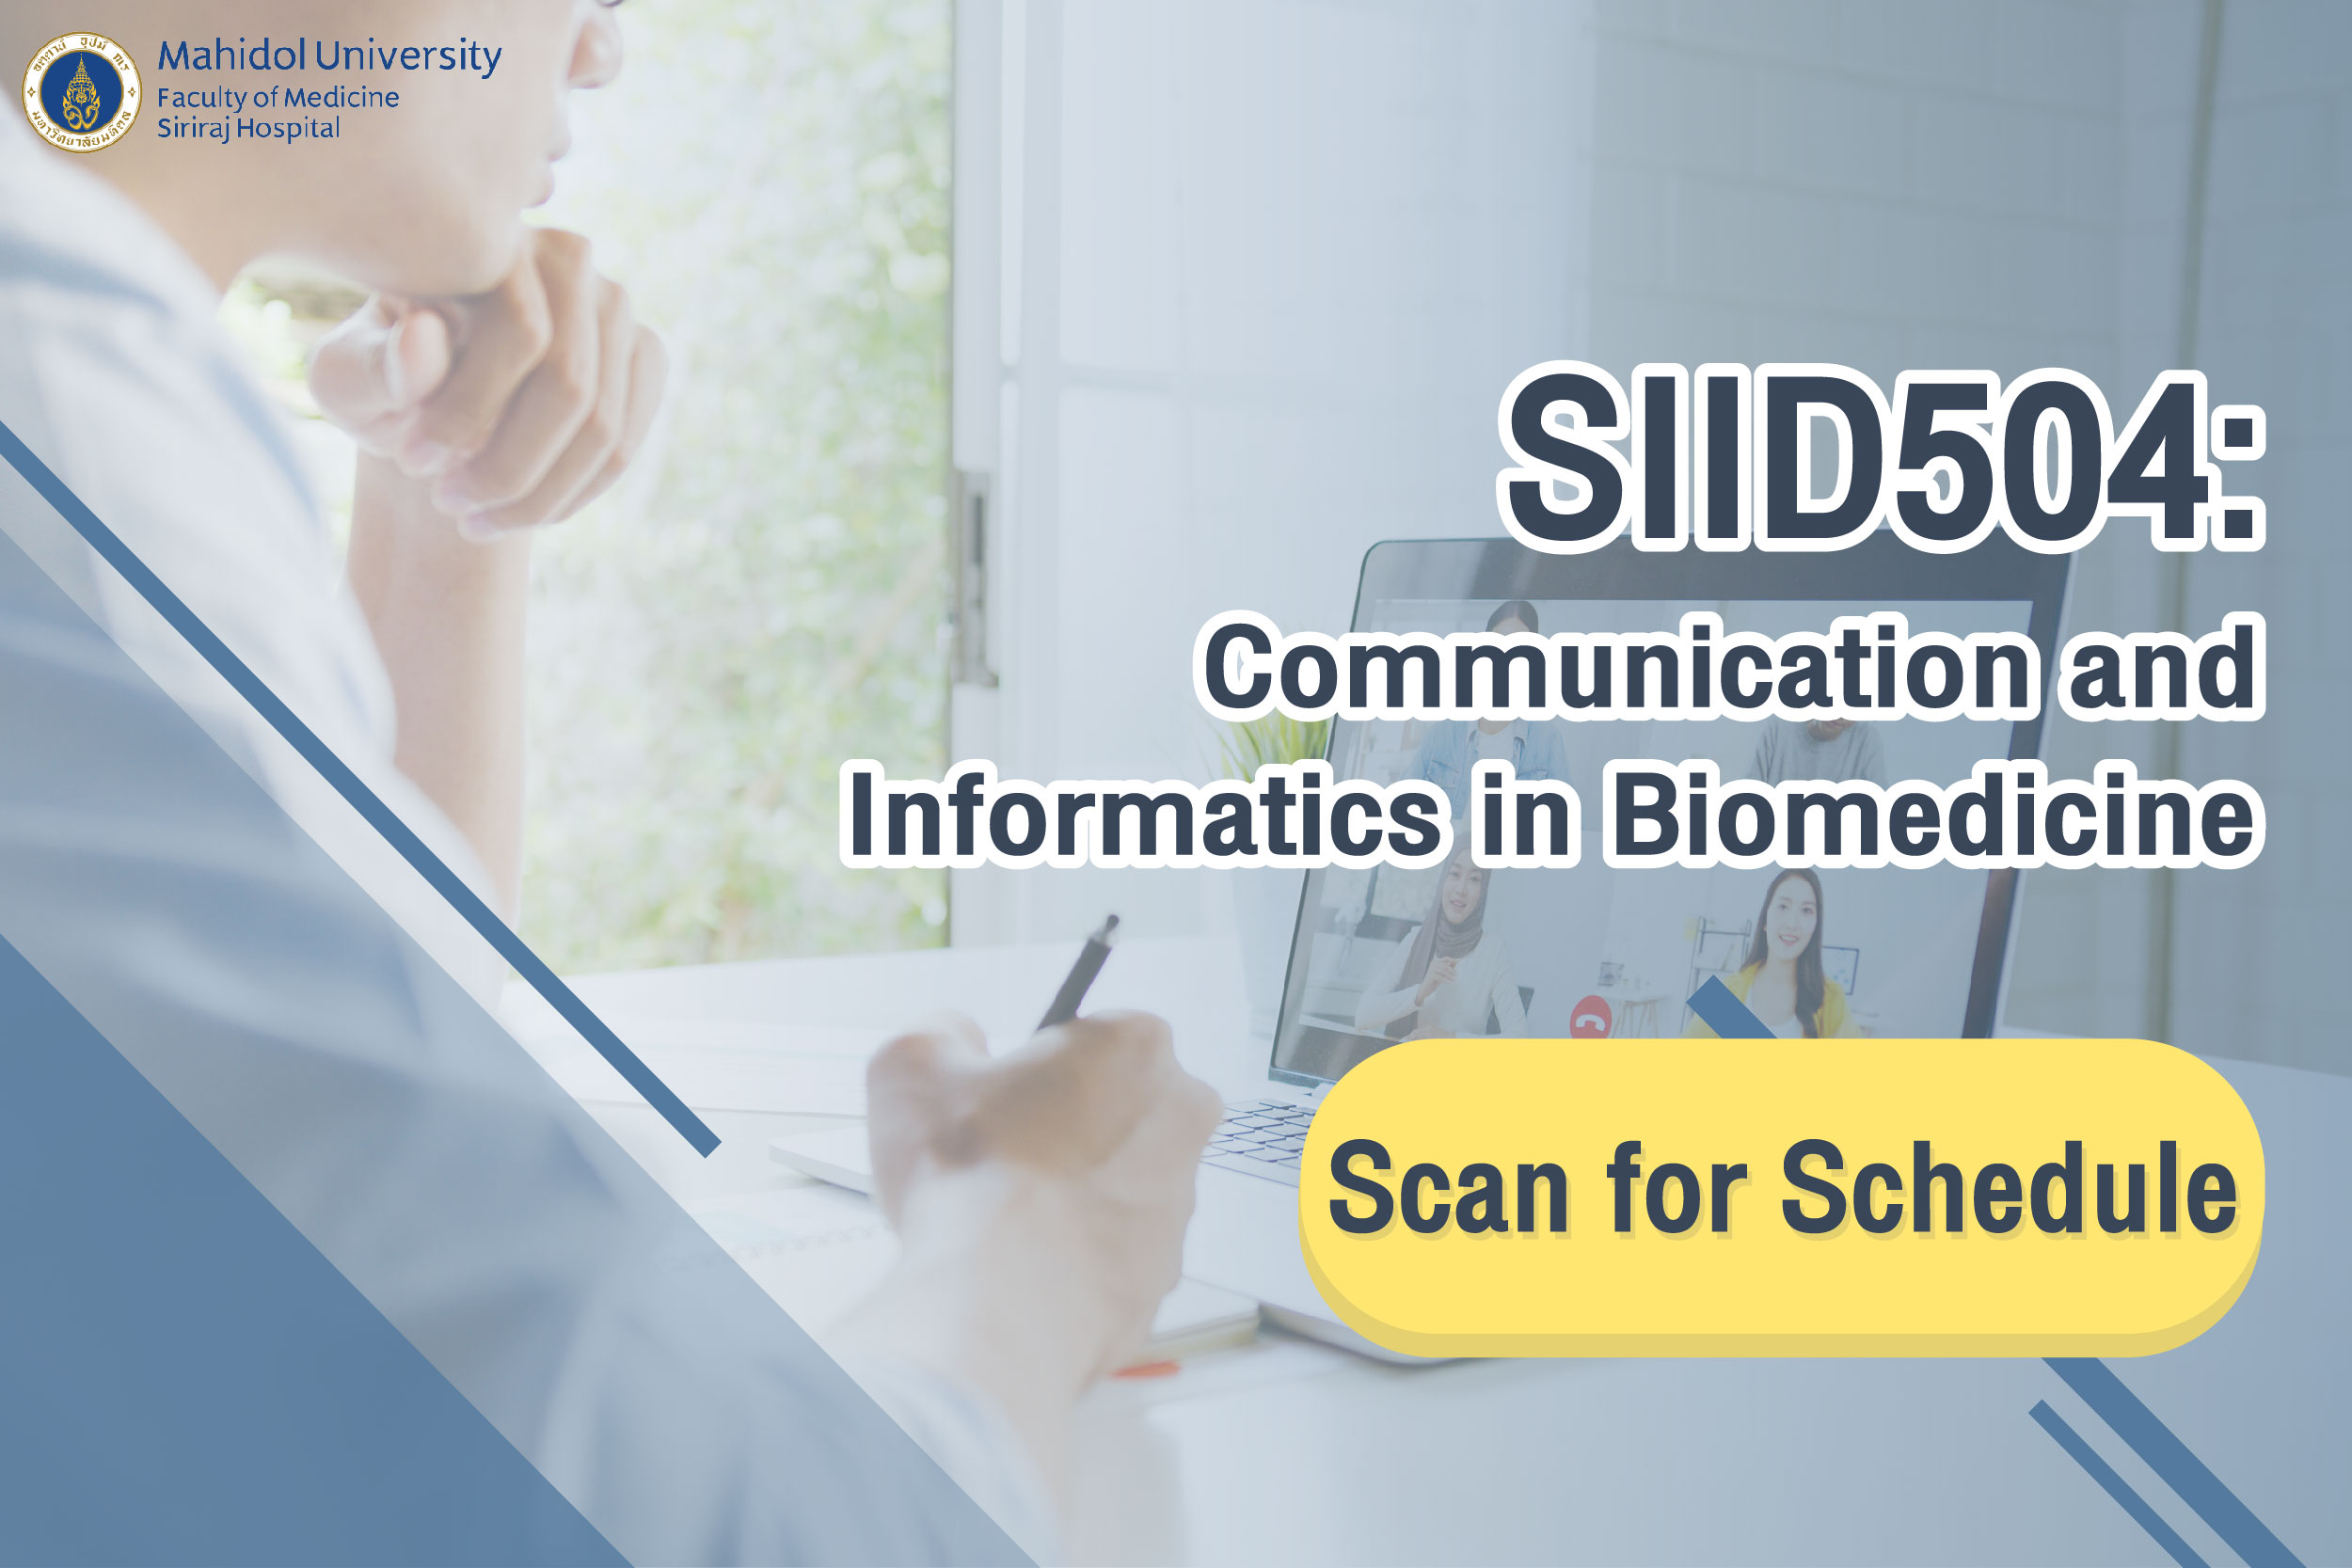 REGISTER!!! COURSE SIID504: Communication and Informatics in Biomedicine